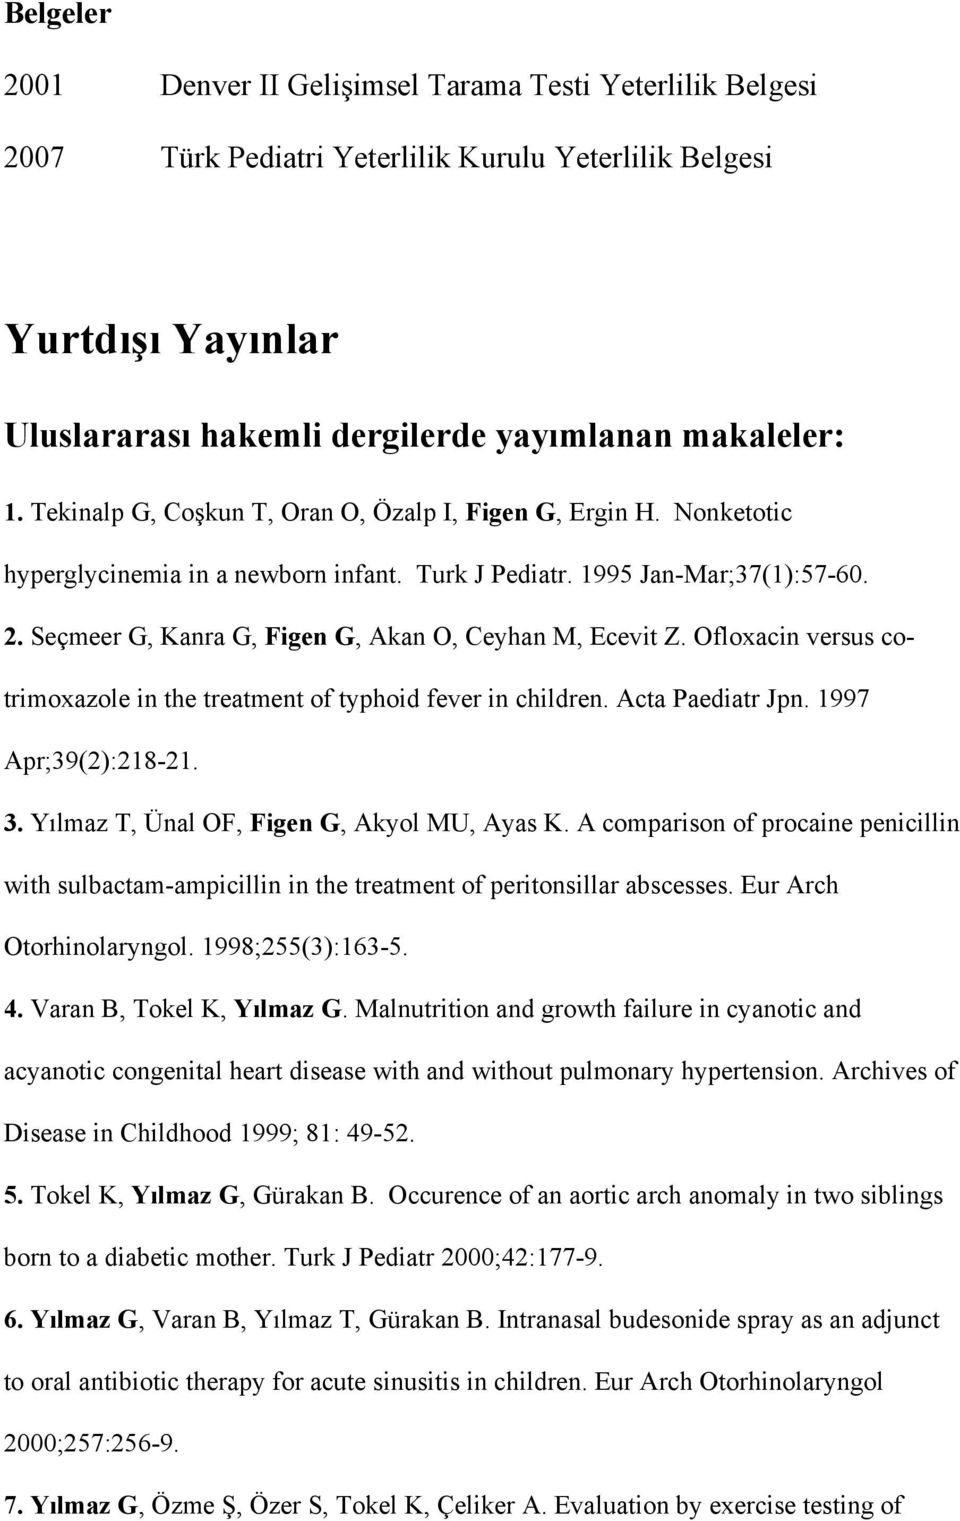 Seçmeer G, Kanra G, Figen G, Akan O, Ceyhan M, Ecevit Z. Ofloxacin versus cotrimoxazole in the treatment of typhoid fever in children. Acta Paediatr Jpn. 1997 Apr;39(2):218-21. 3.